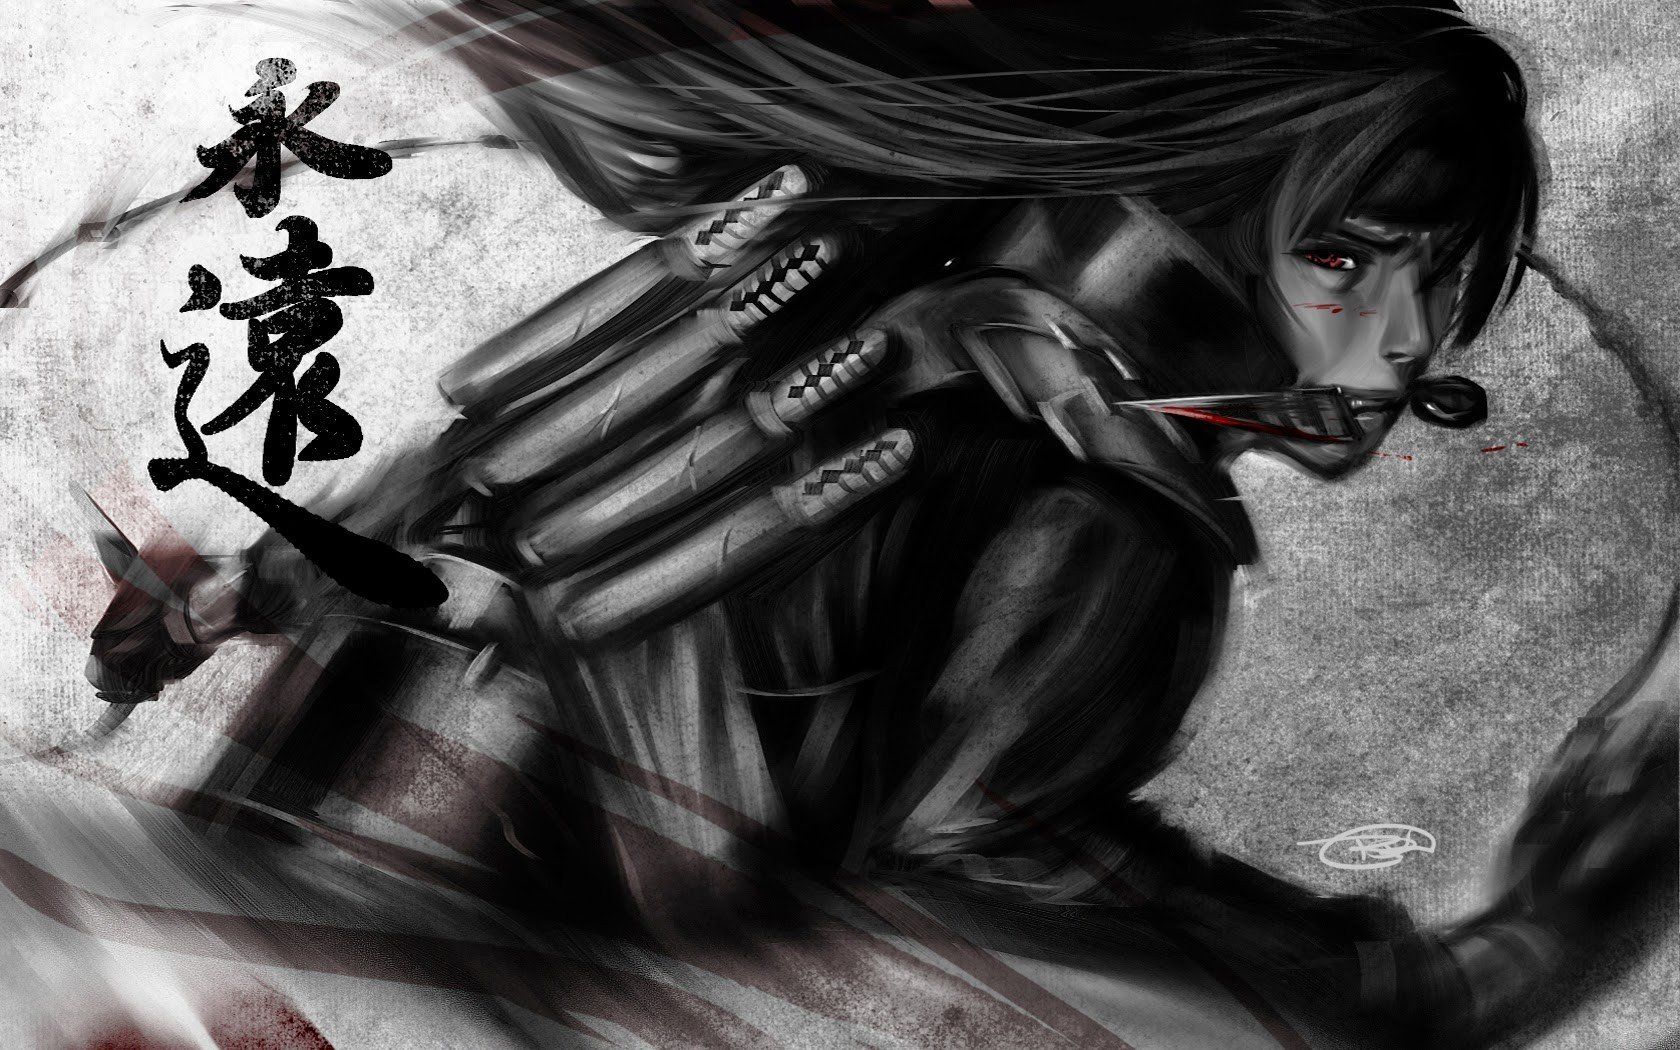 82838 Uchiha Madara ninjas Naruto Shippuuden daggers anime boys red eyes artwork fan art selective coloring kanji